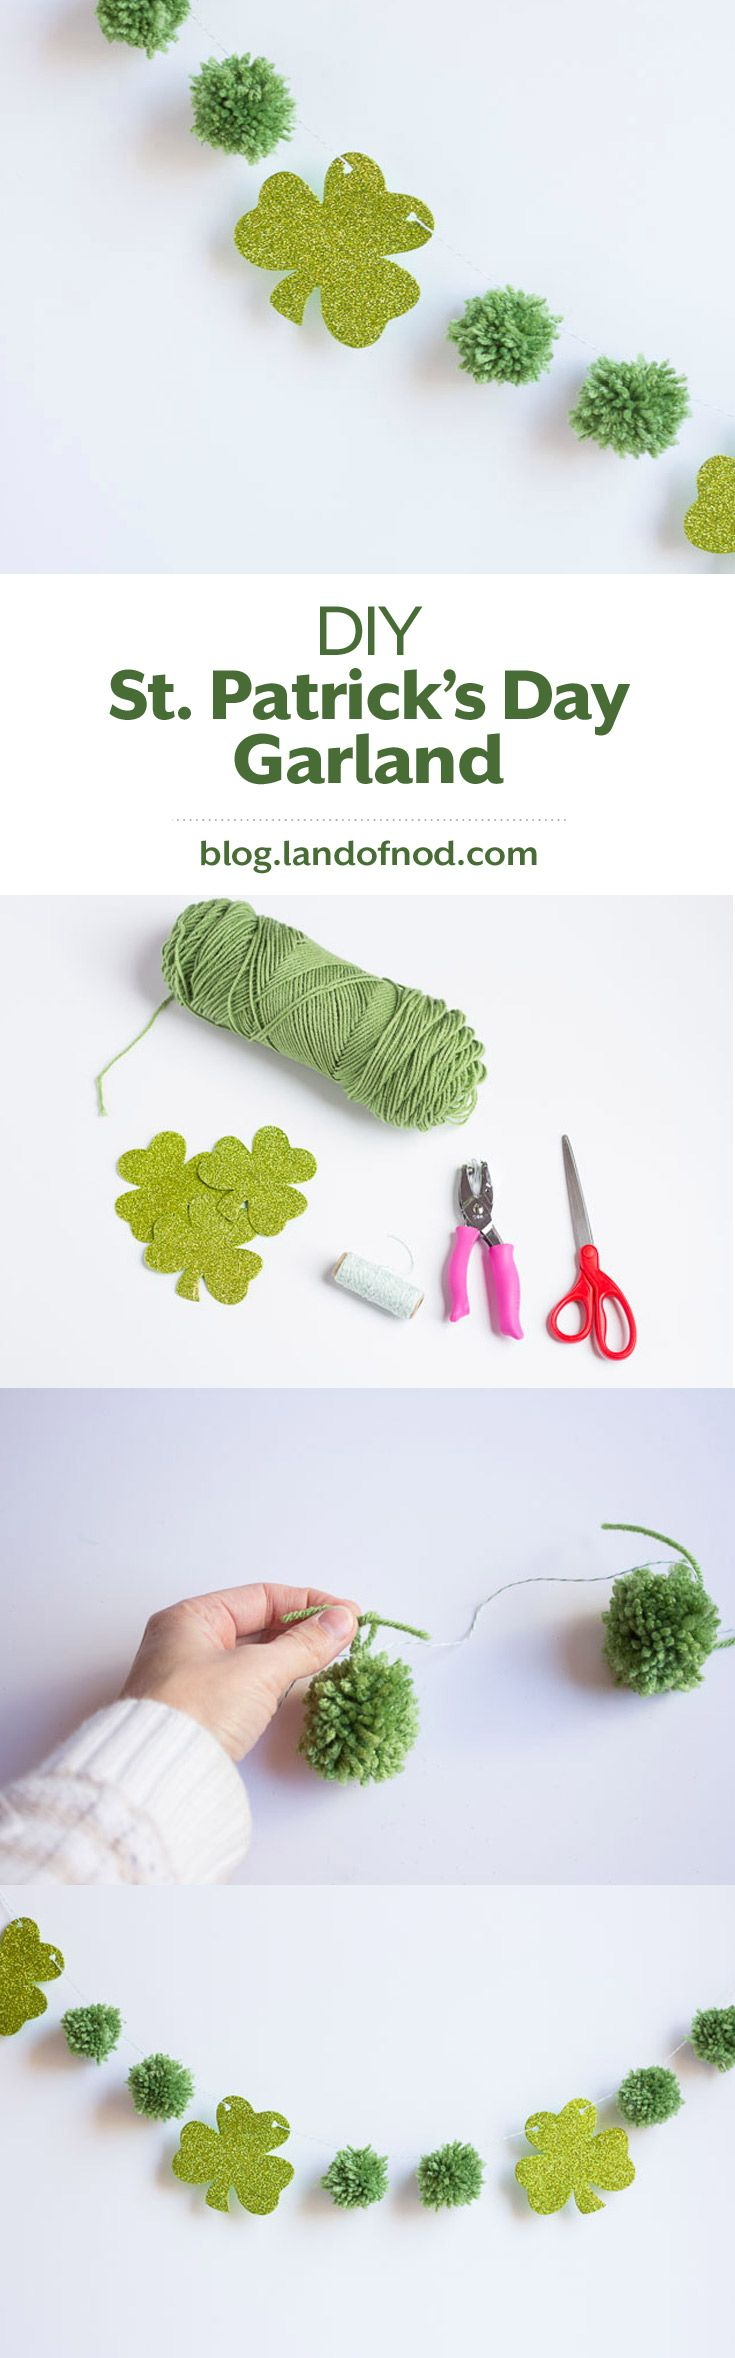 With a few items and just a little bit of time you can easily add some St. Patrick's Day decor to your home with this St. Patrick's Day Garland DIY.